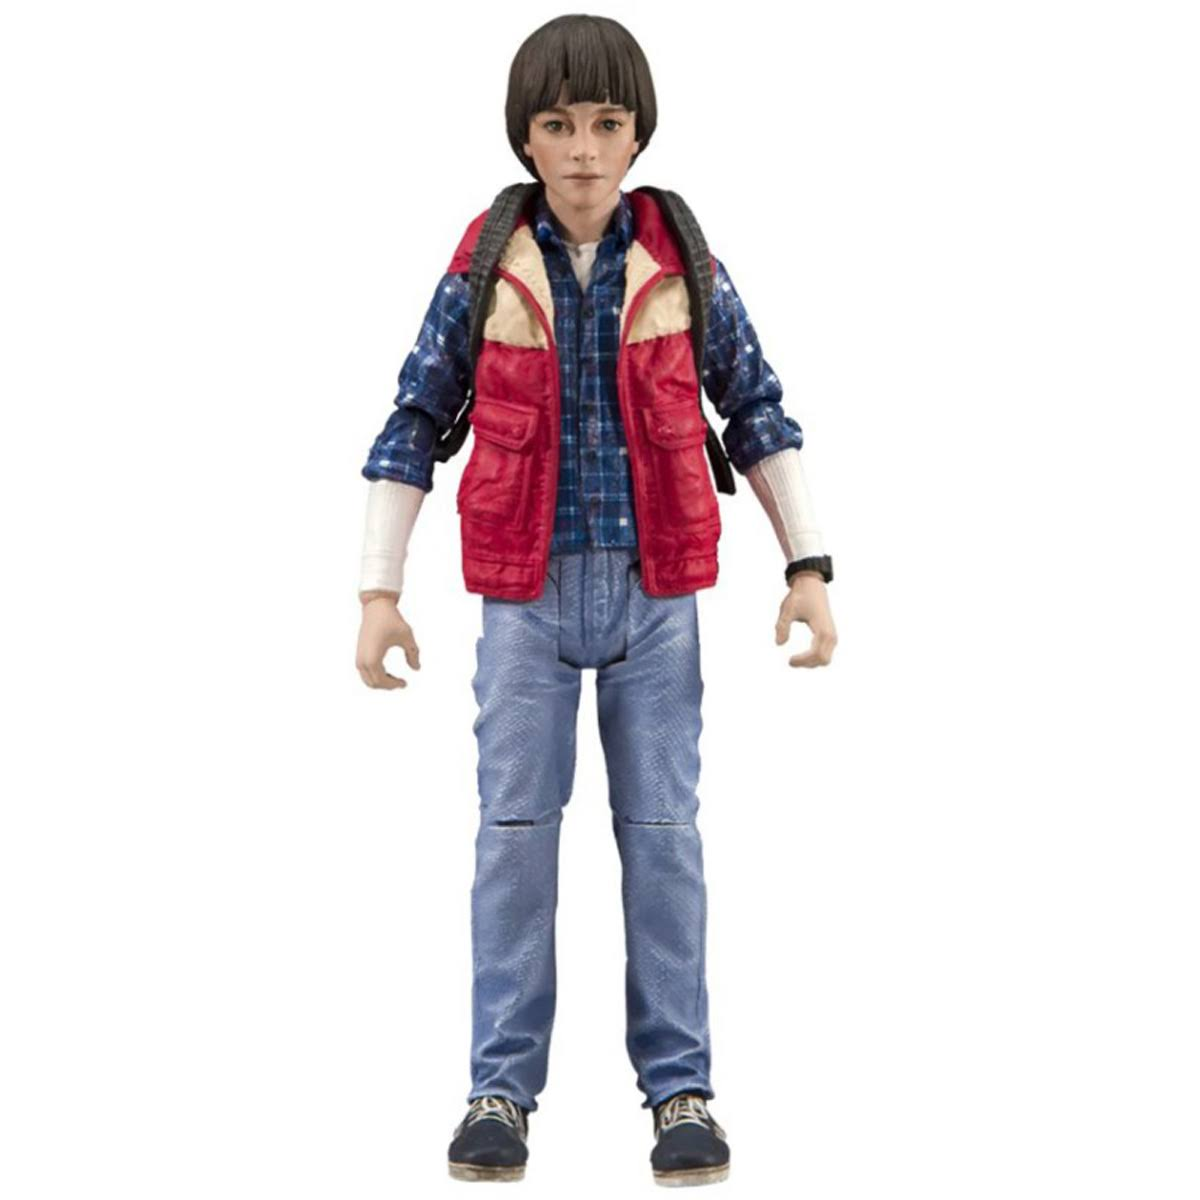 Stranger Things Action Figure - Will, 7""